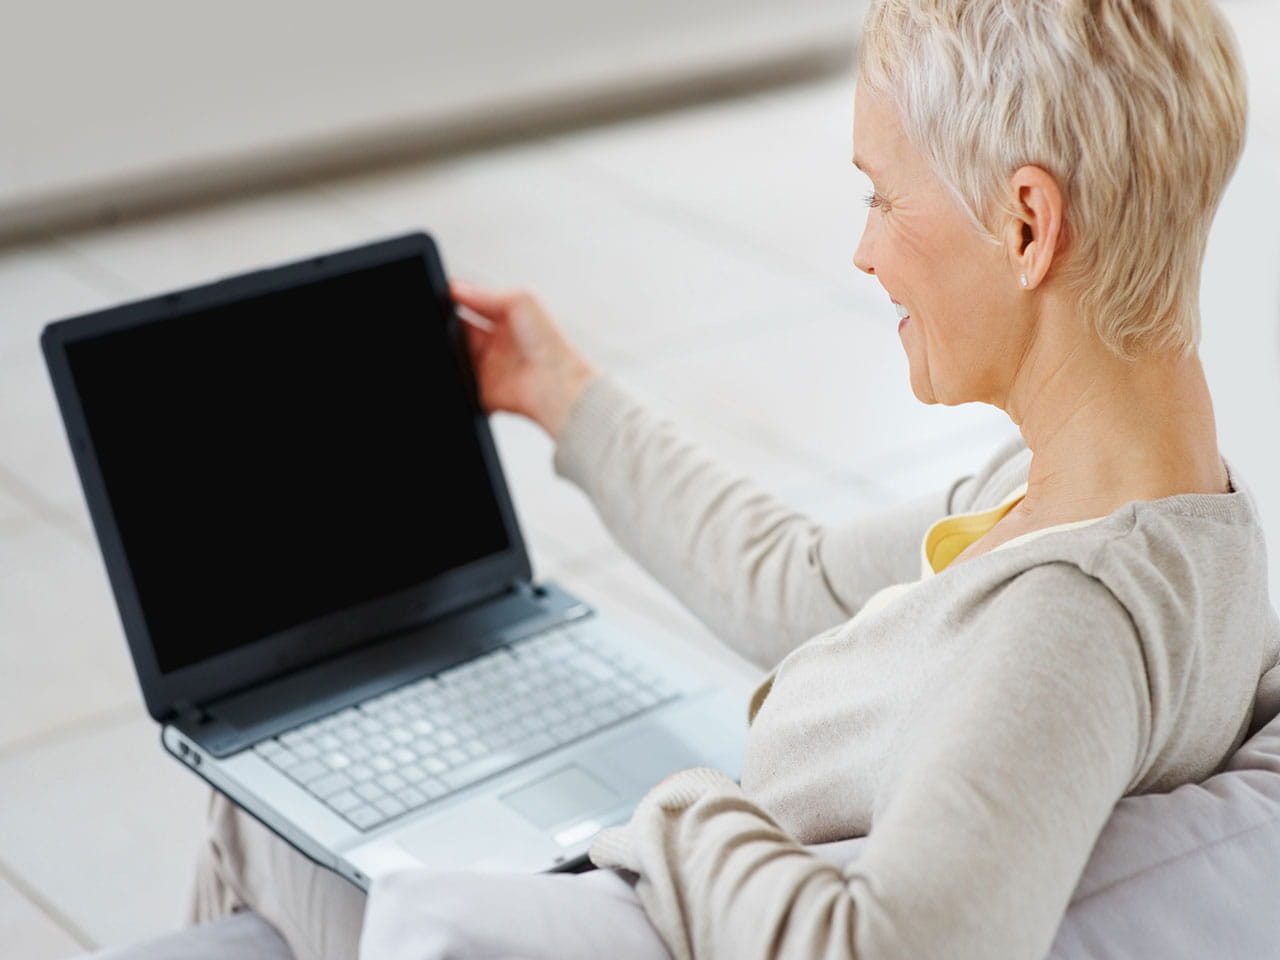 Mature woman at home on a laptop